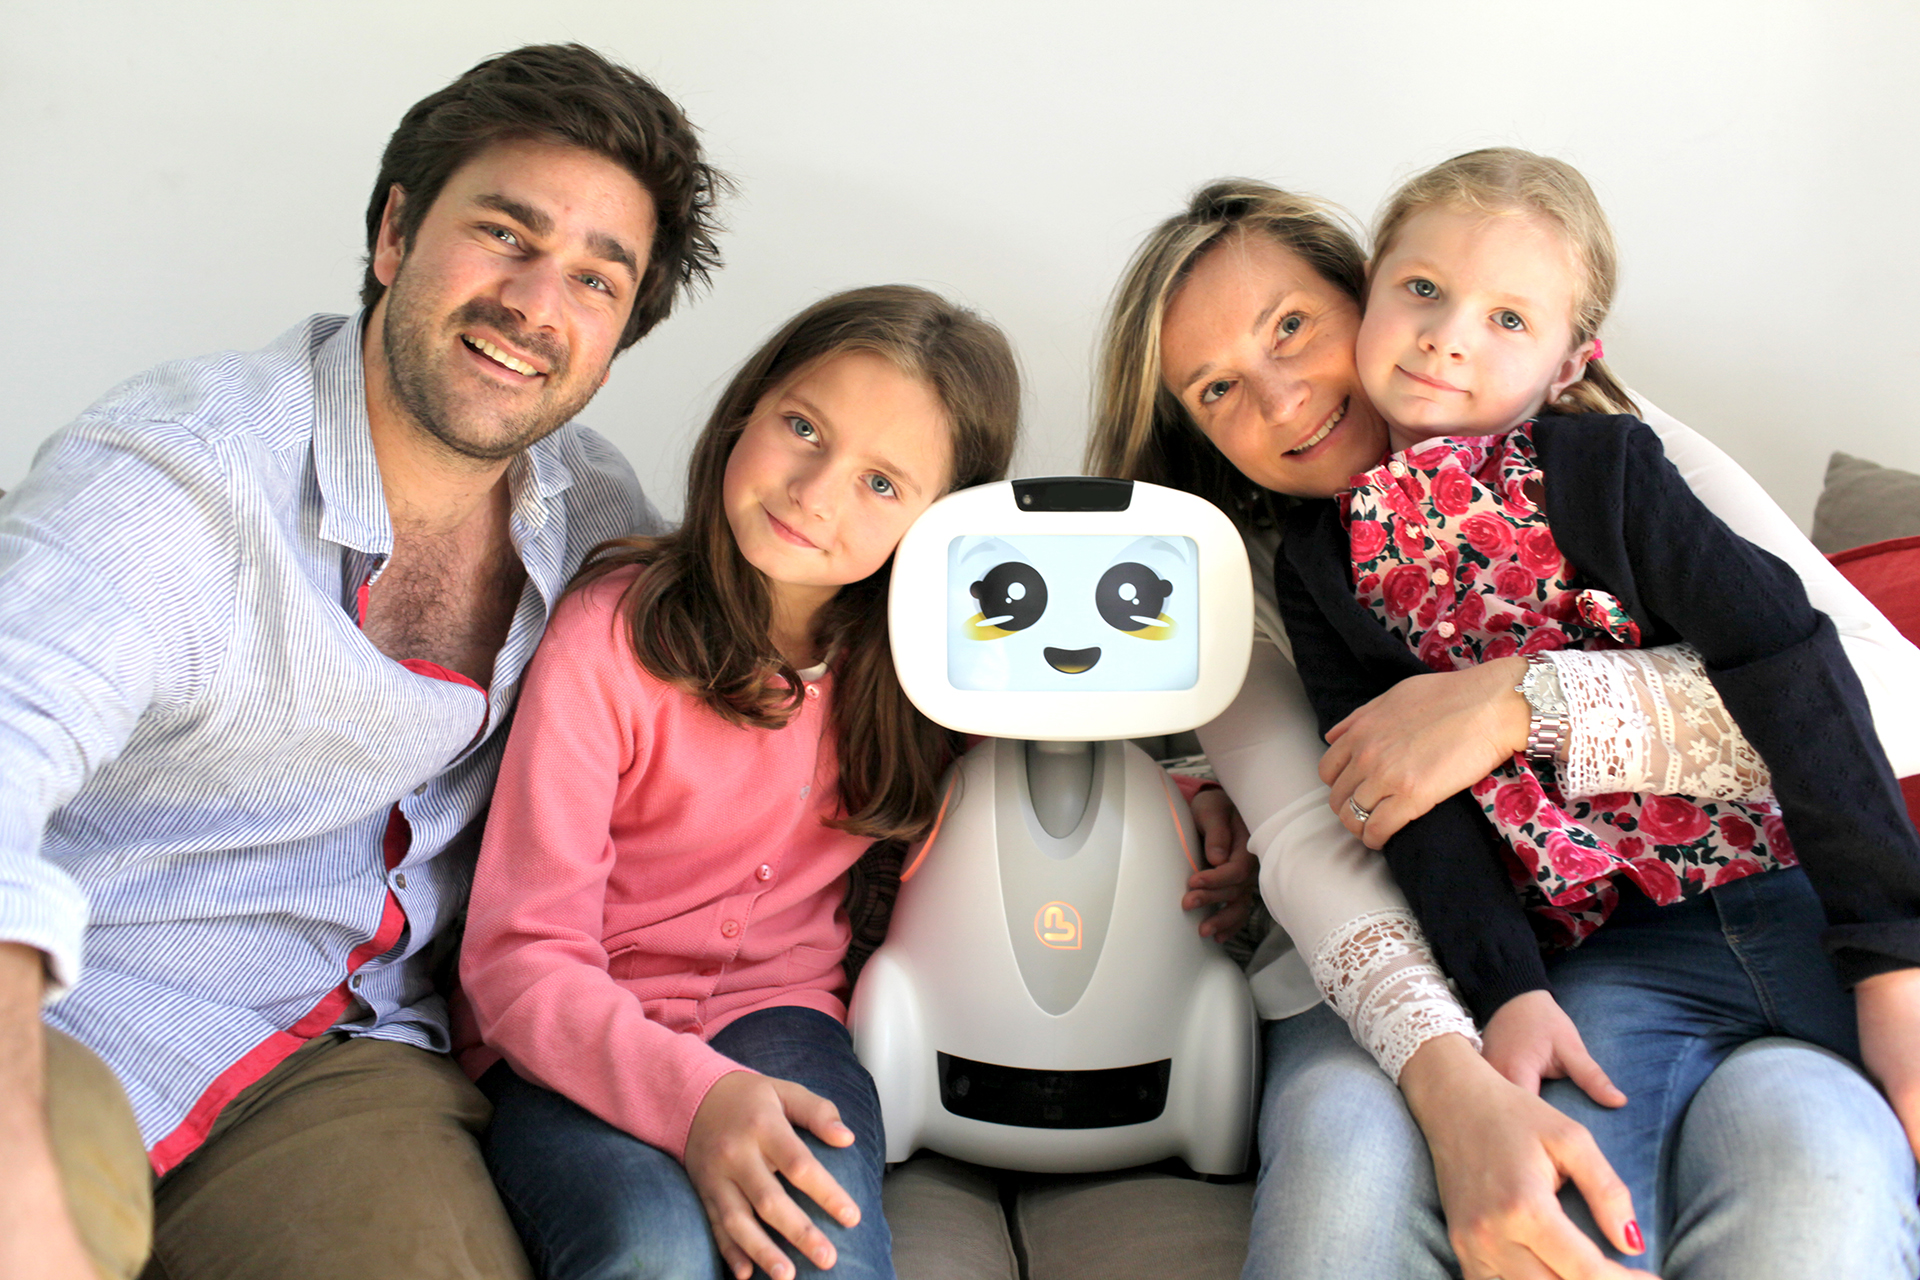 Buddy, desgined in France and built in the U.S., is billed as a programmable 'home companion' for kids, families and the elderly.